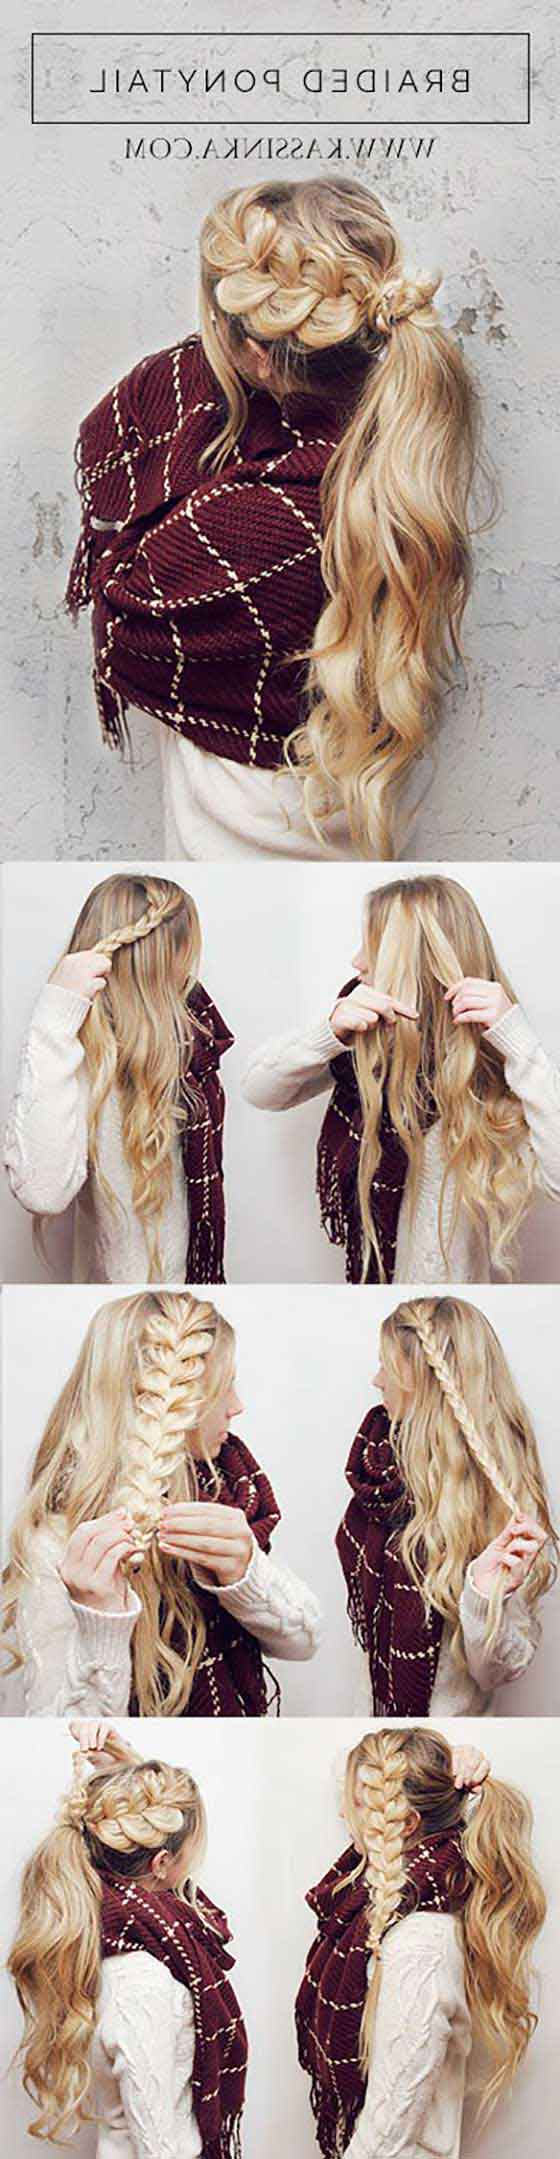 40 Braided Hairstyles For Long Hair For Current Secured Wrapping Braided Hairstyles (View 20 of 20)